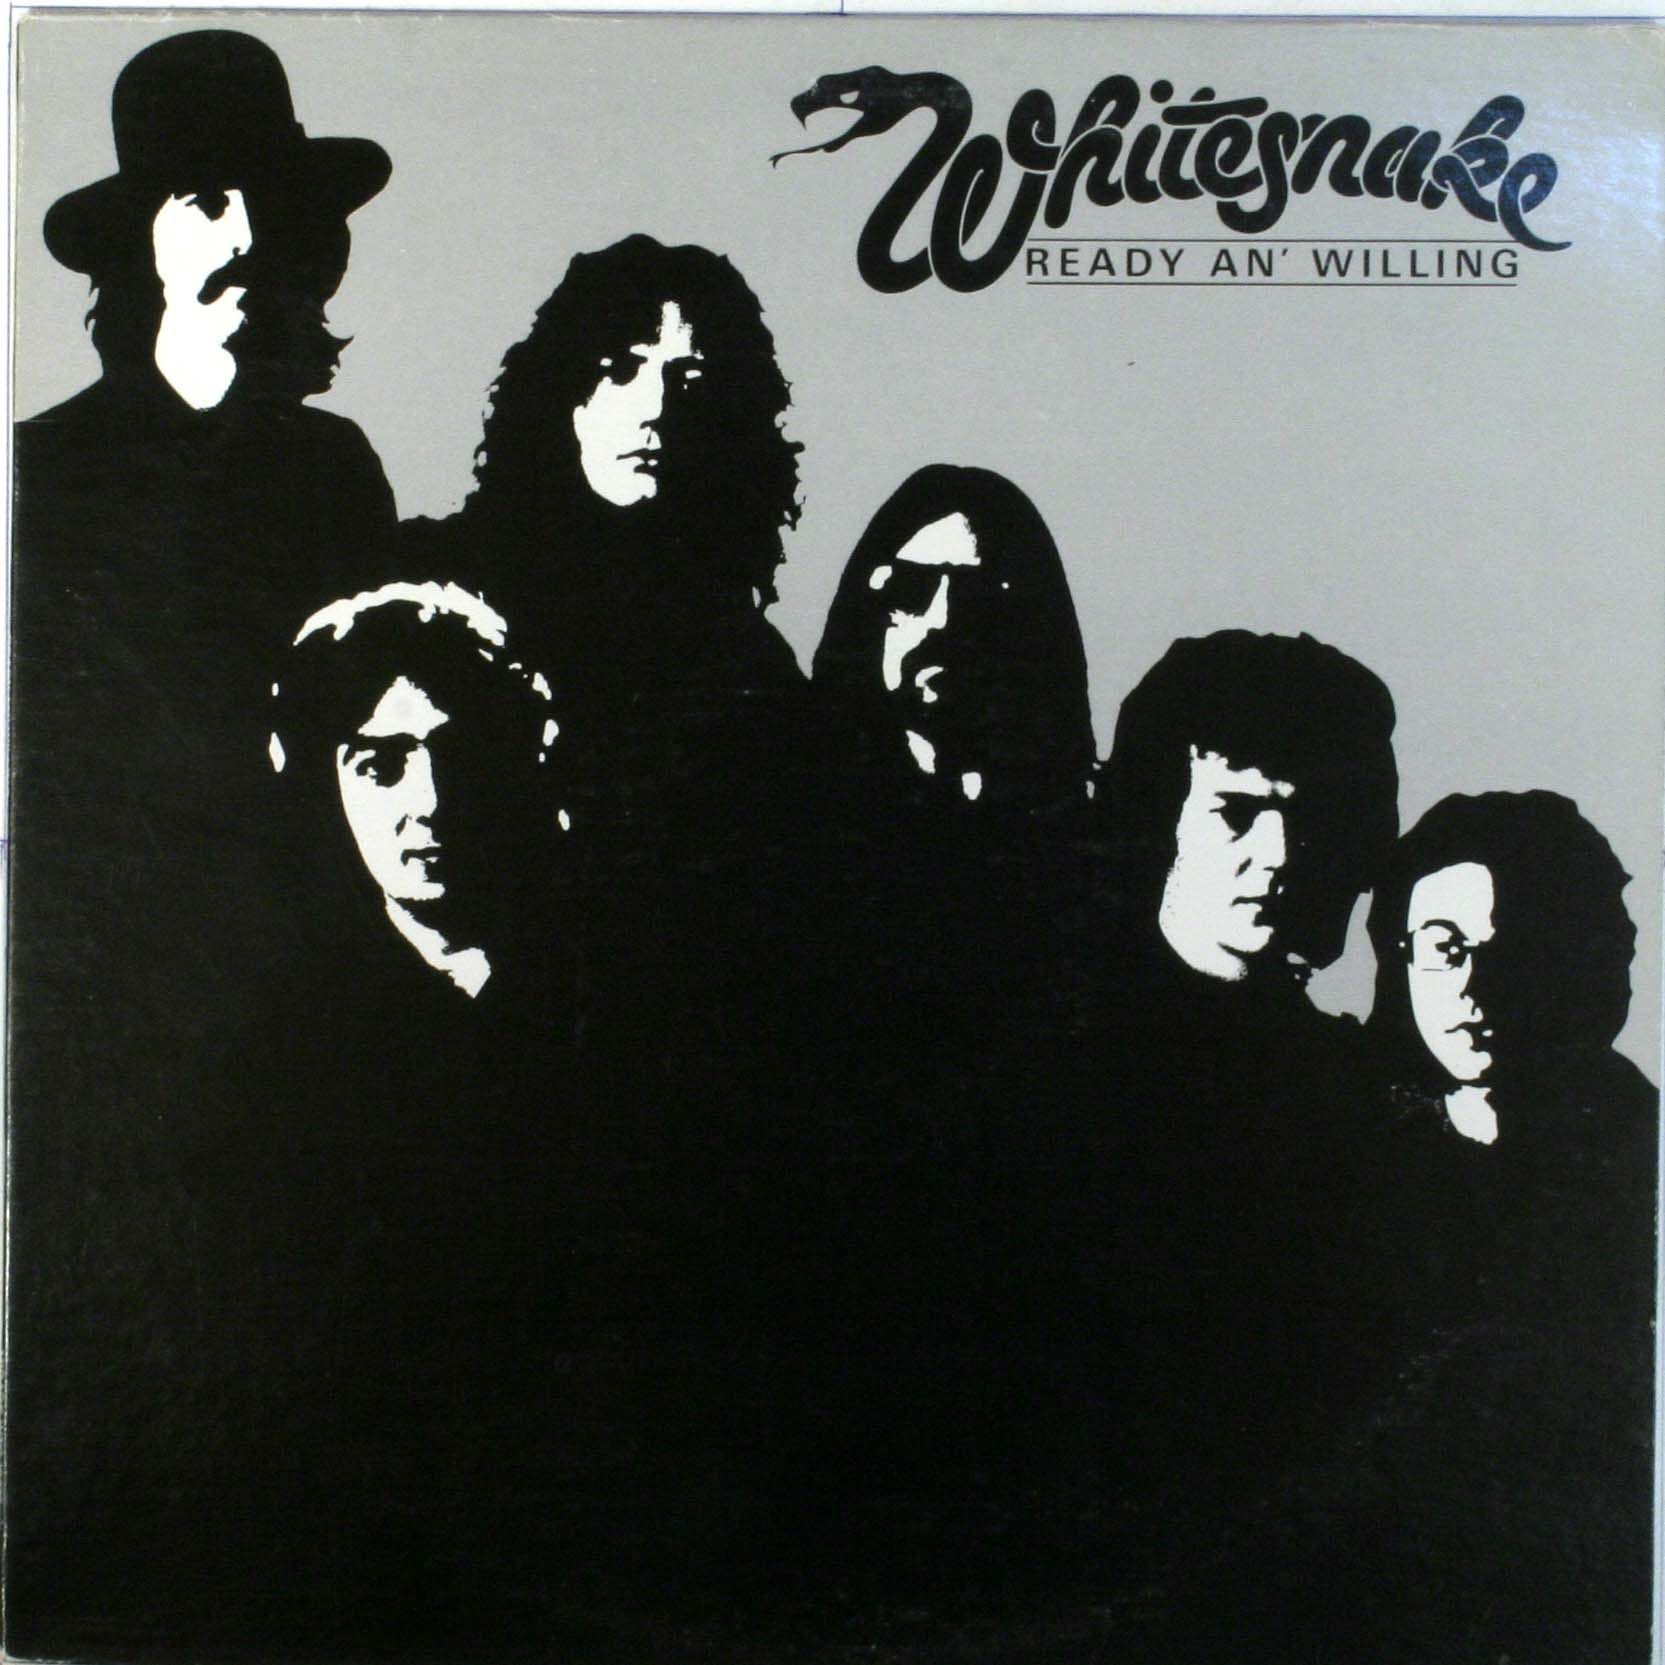 Whitesnake - Ready An' Willing EP